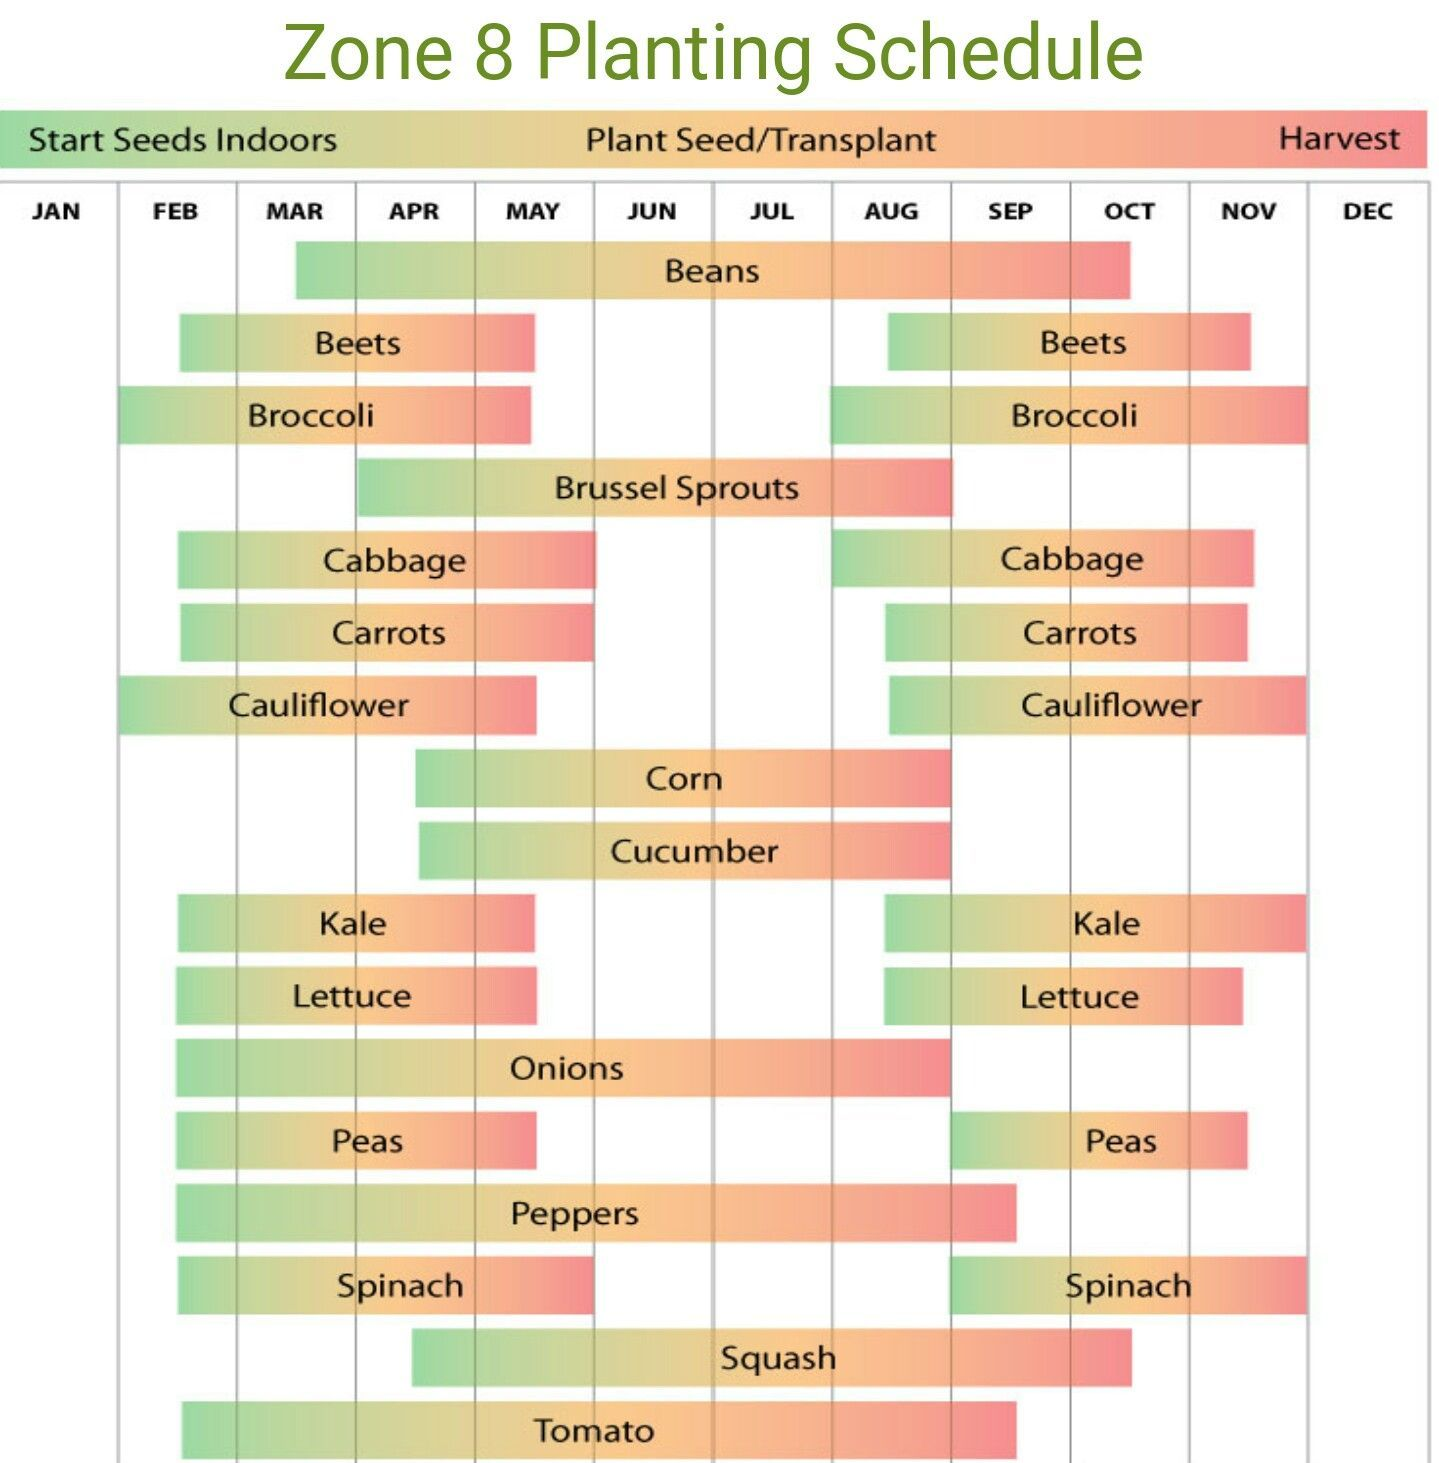 Planting Guide For Zone 8a Using Zip 75125 (Ferris